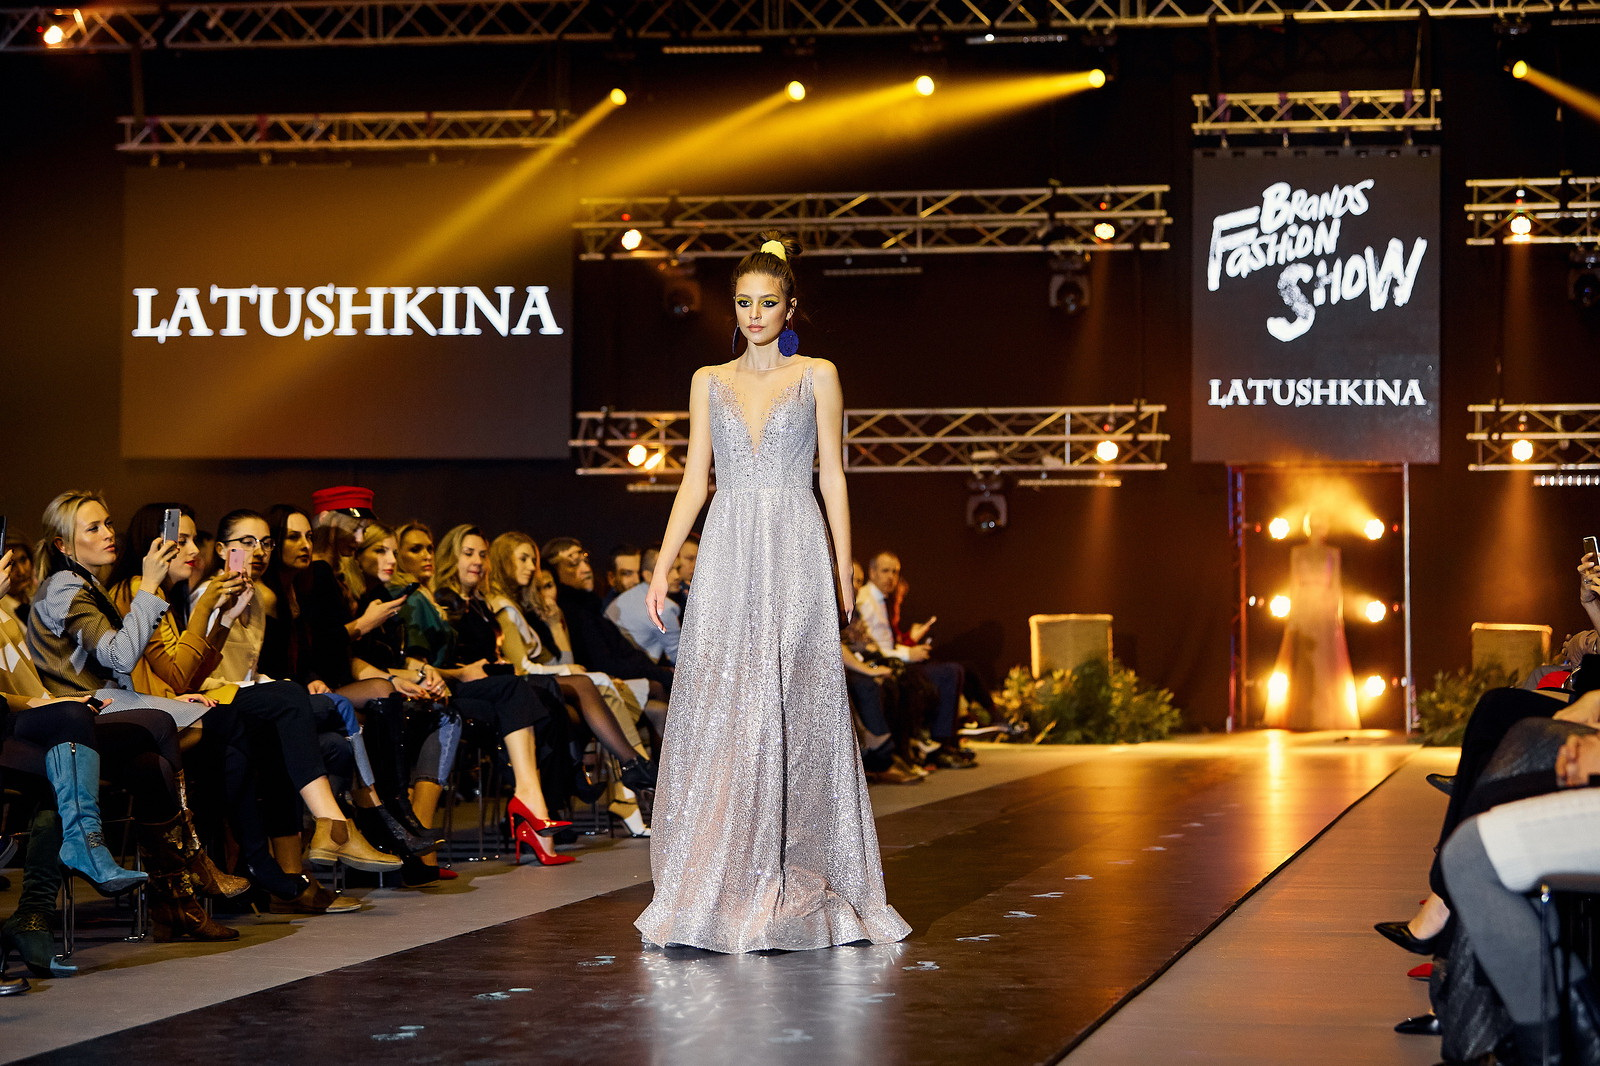 2 день Brands Fashion Show: Candy Lady, Ежевика, Latushkina